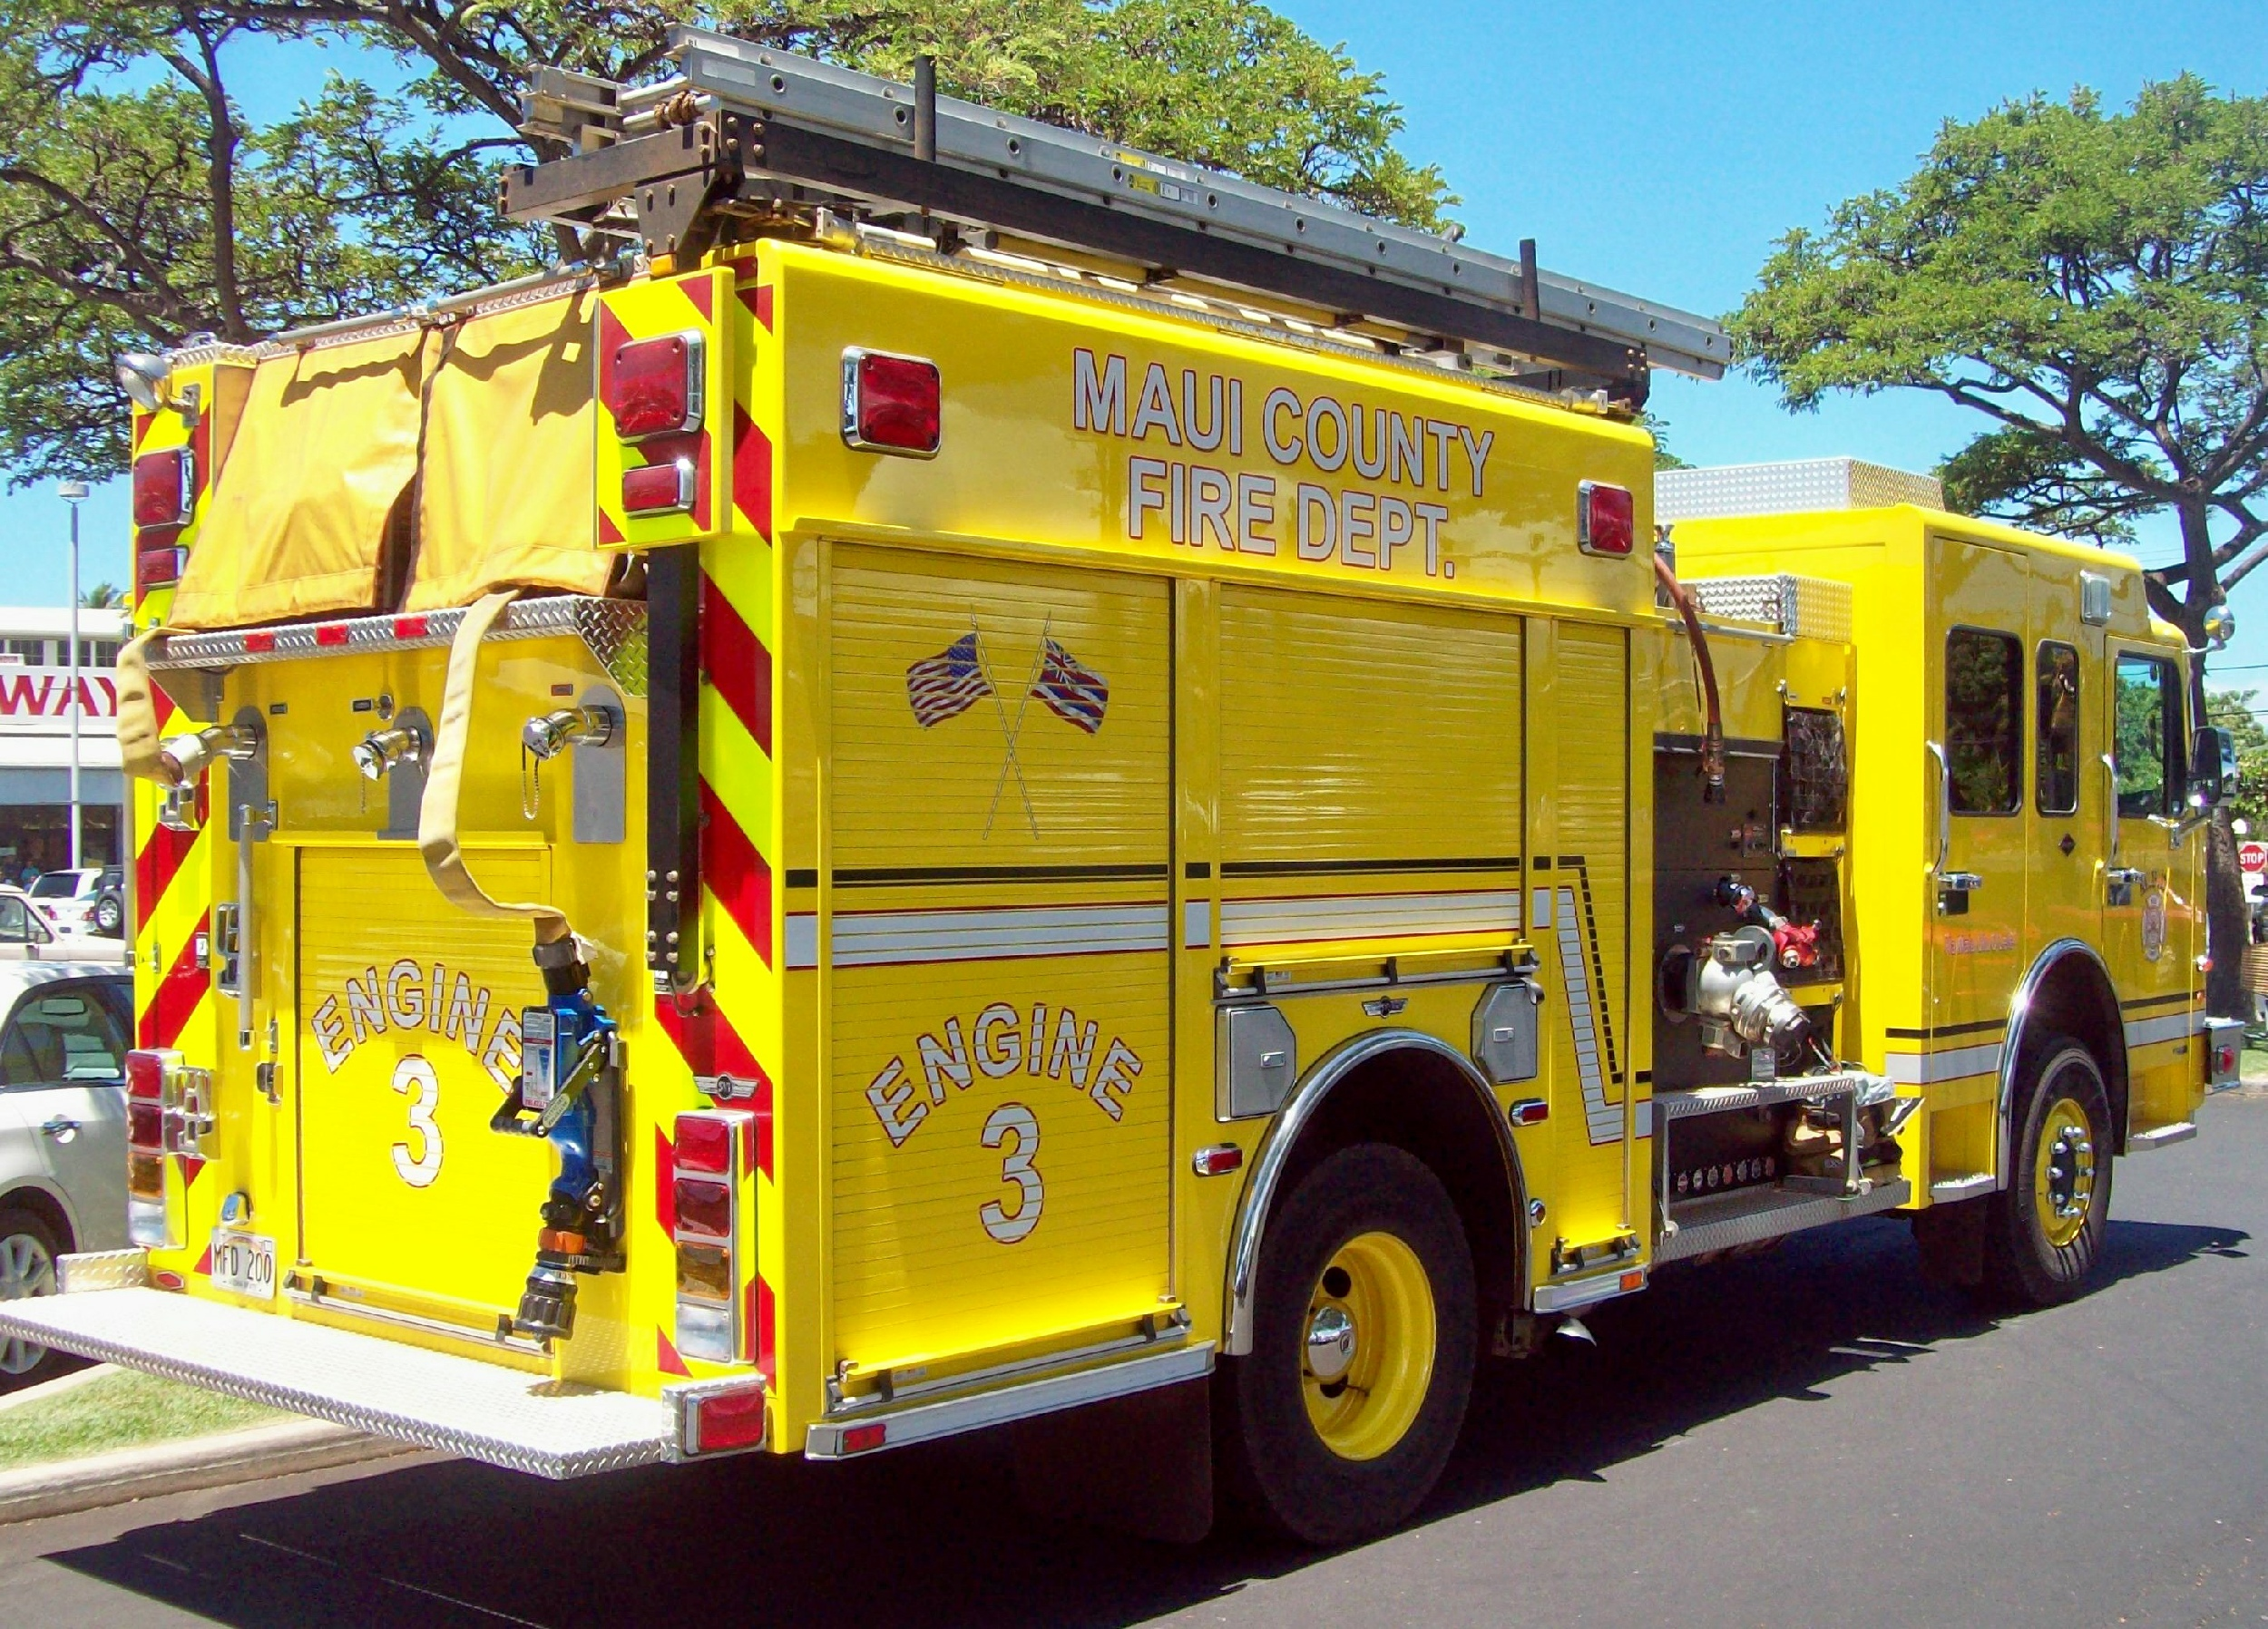 HI, Maui County Fire Department